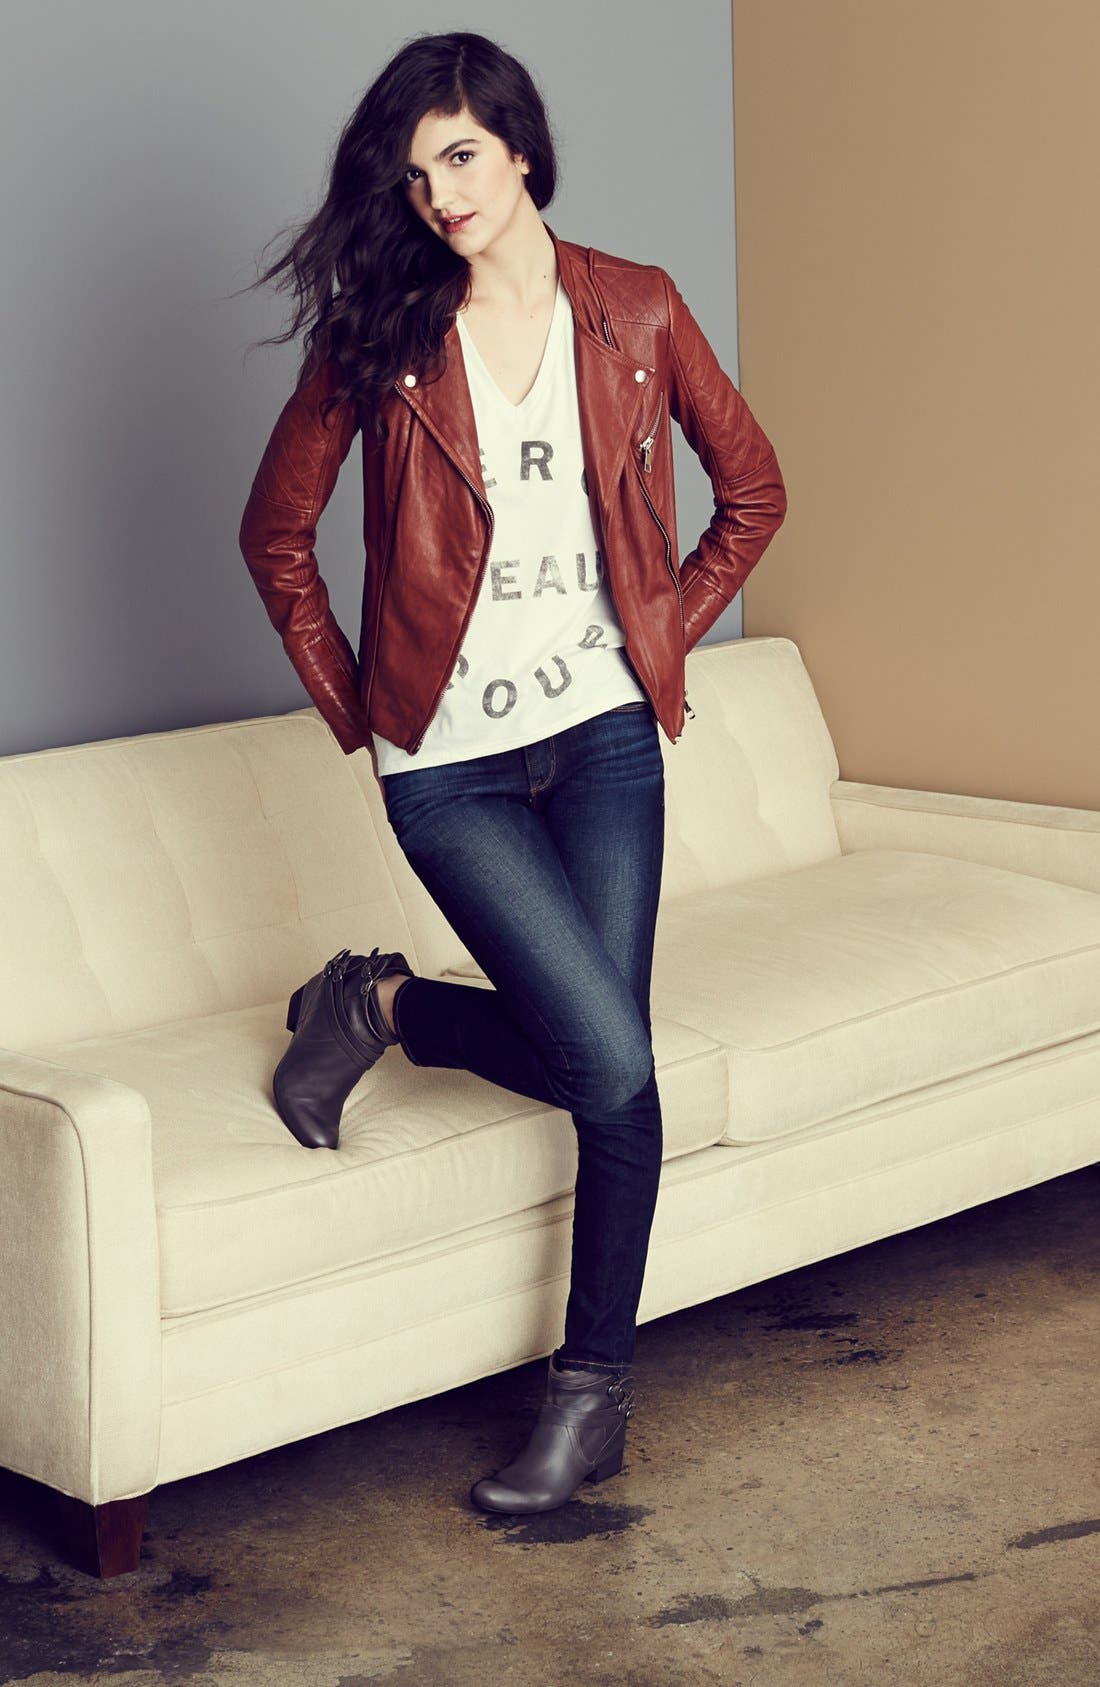 Alternate Image 2  - Kenna-T Moto Jacket, Signorelli Tee & Big Star Jeans